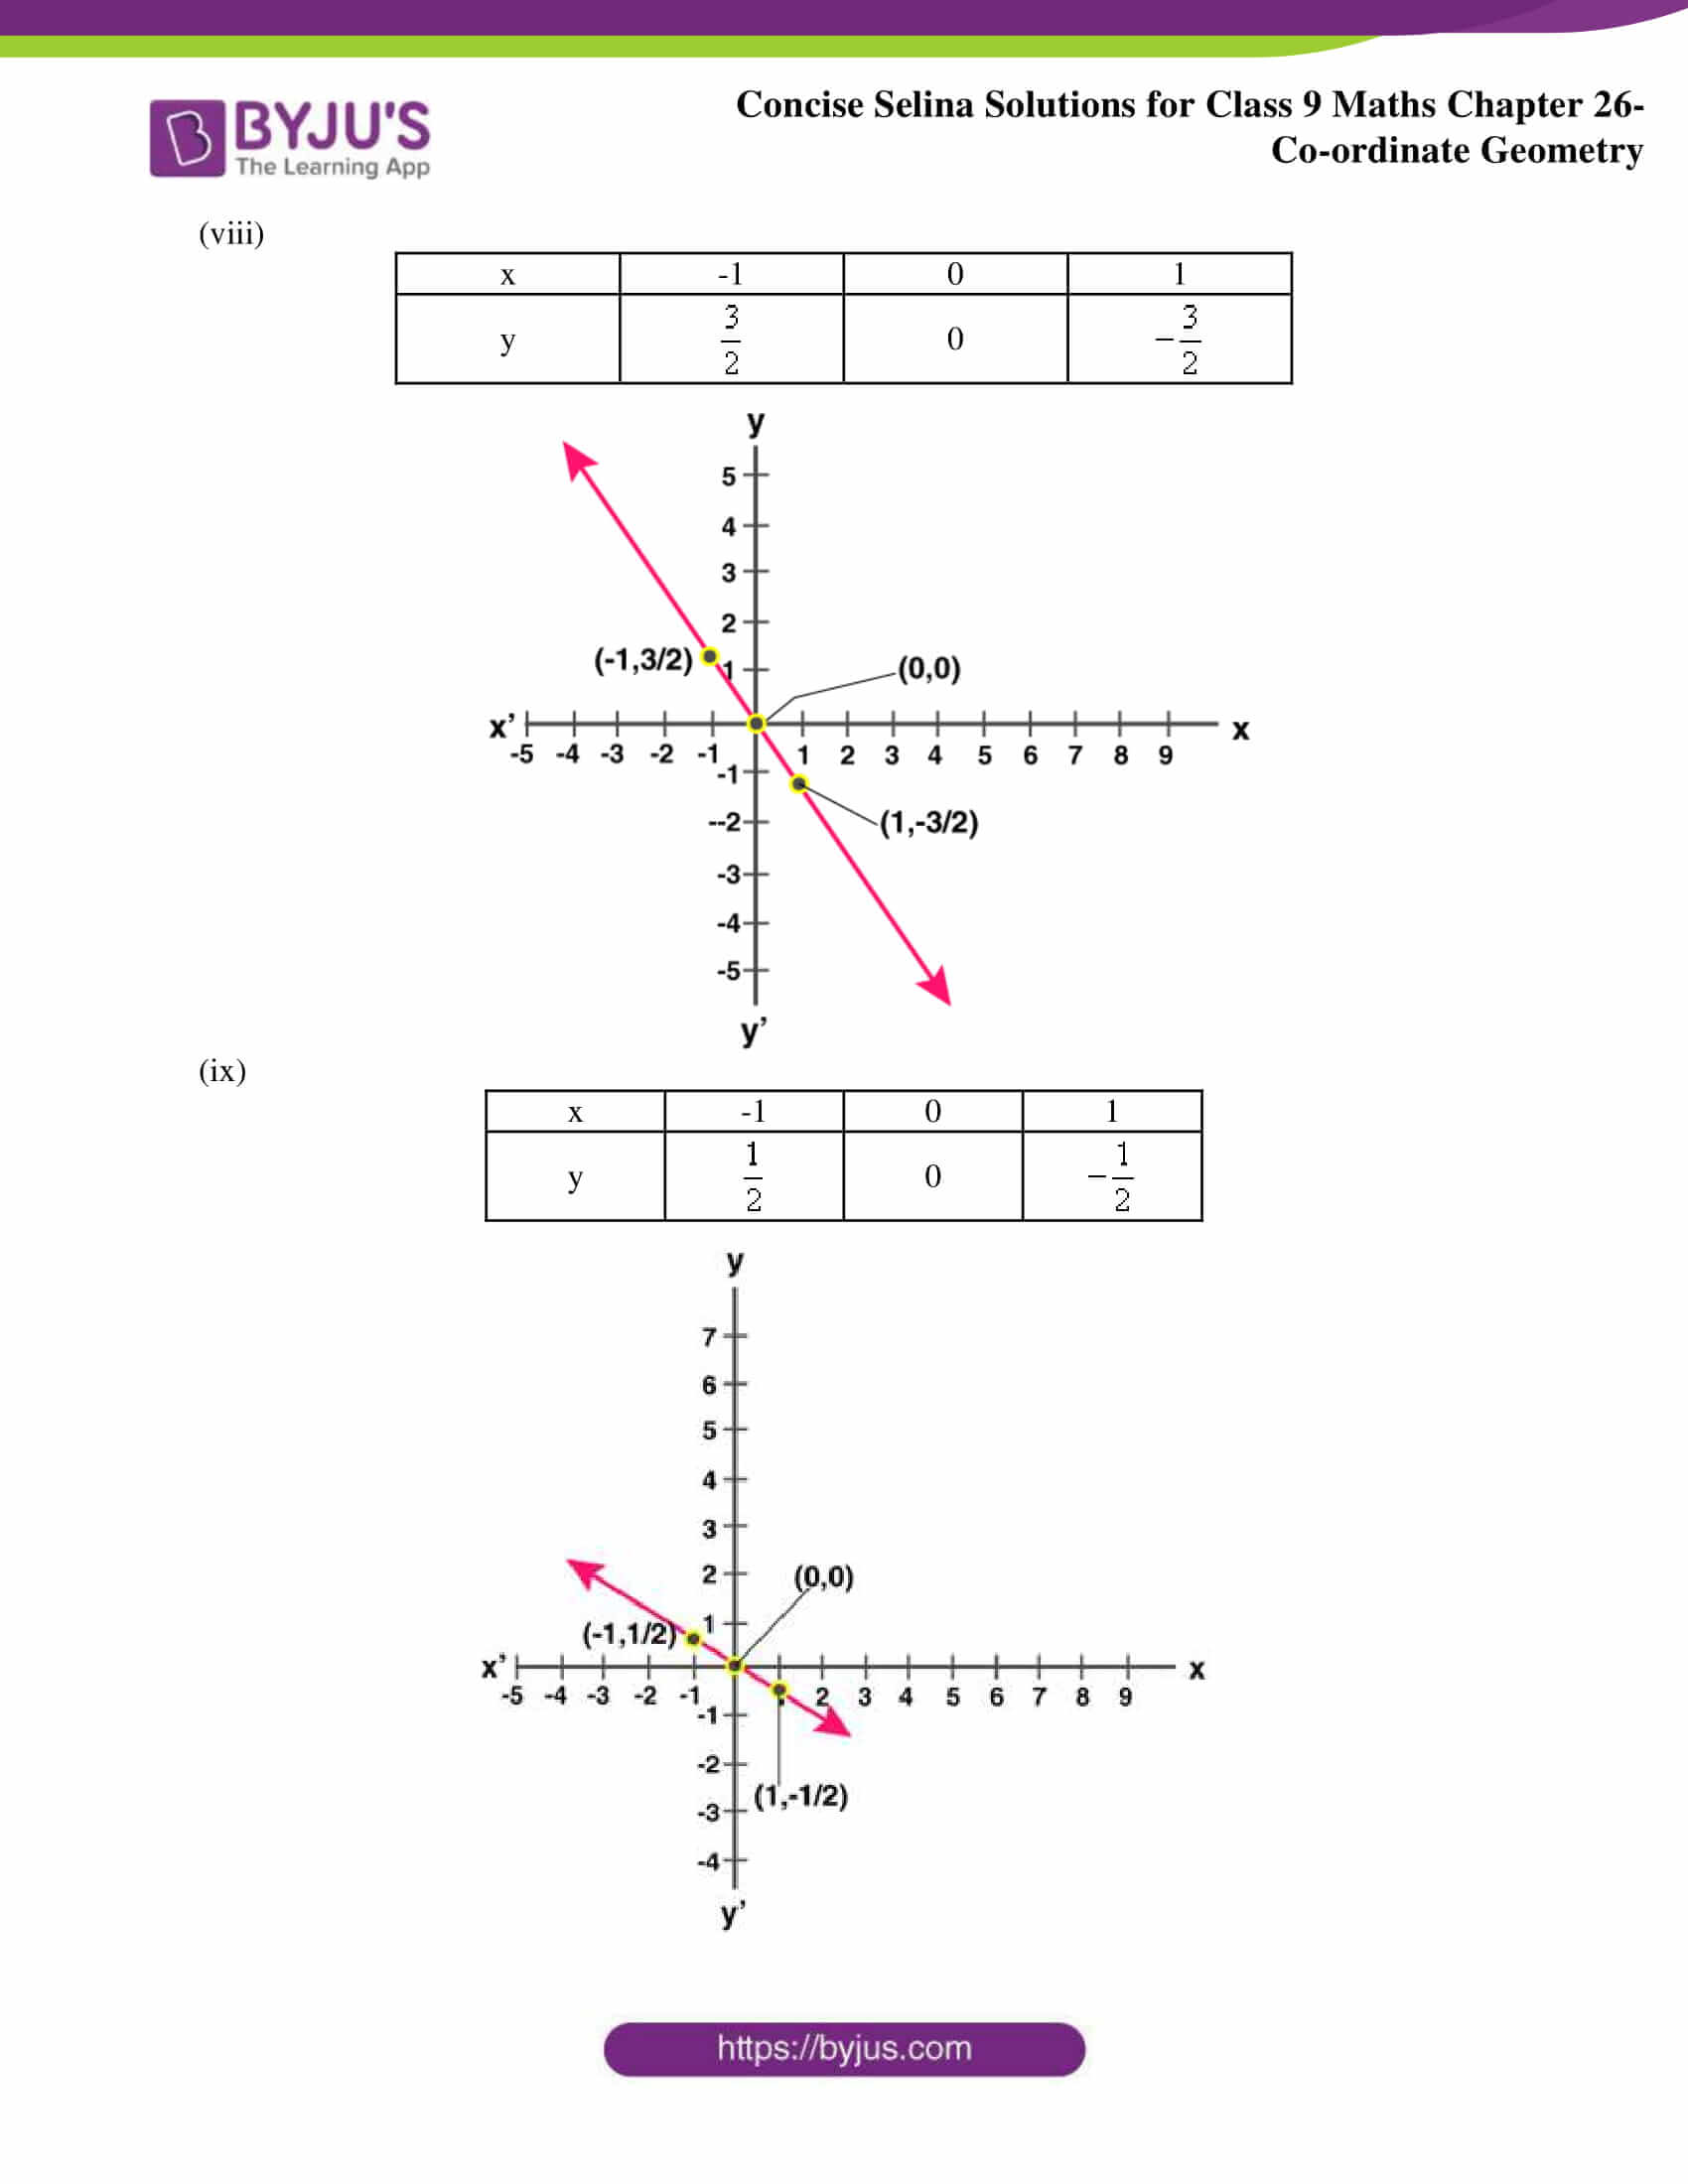 Selina Solutions for Class 9 Maths Chapter 26 part 26